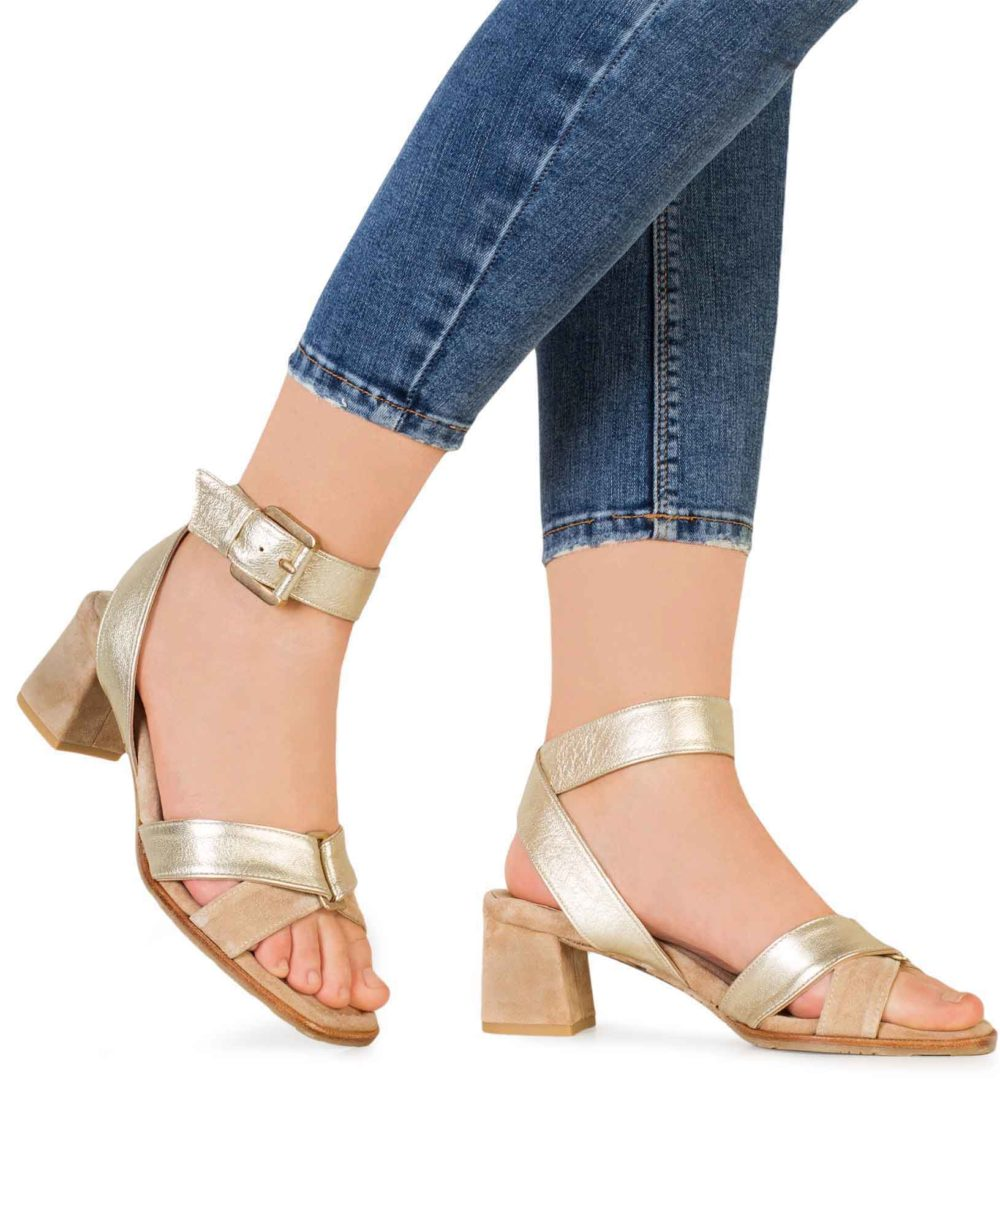 P-3923 Natural Velour Platino Metalgrain Leather Sandals by Paco Gil Piernas